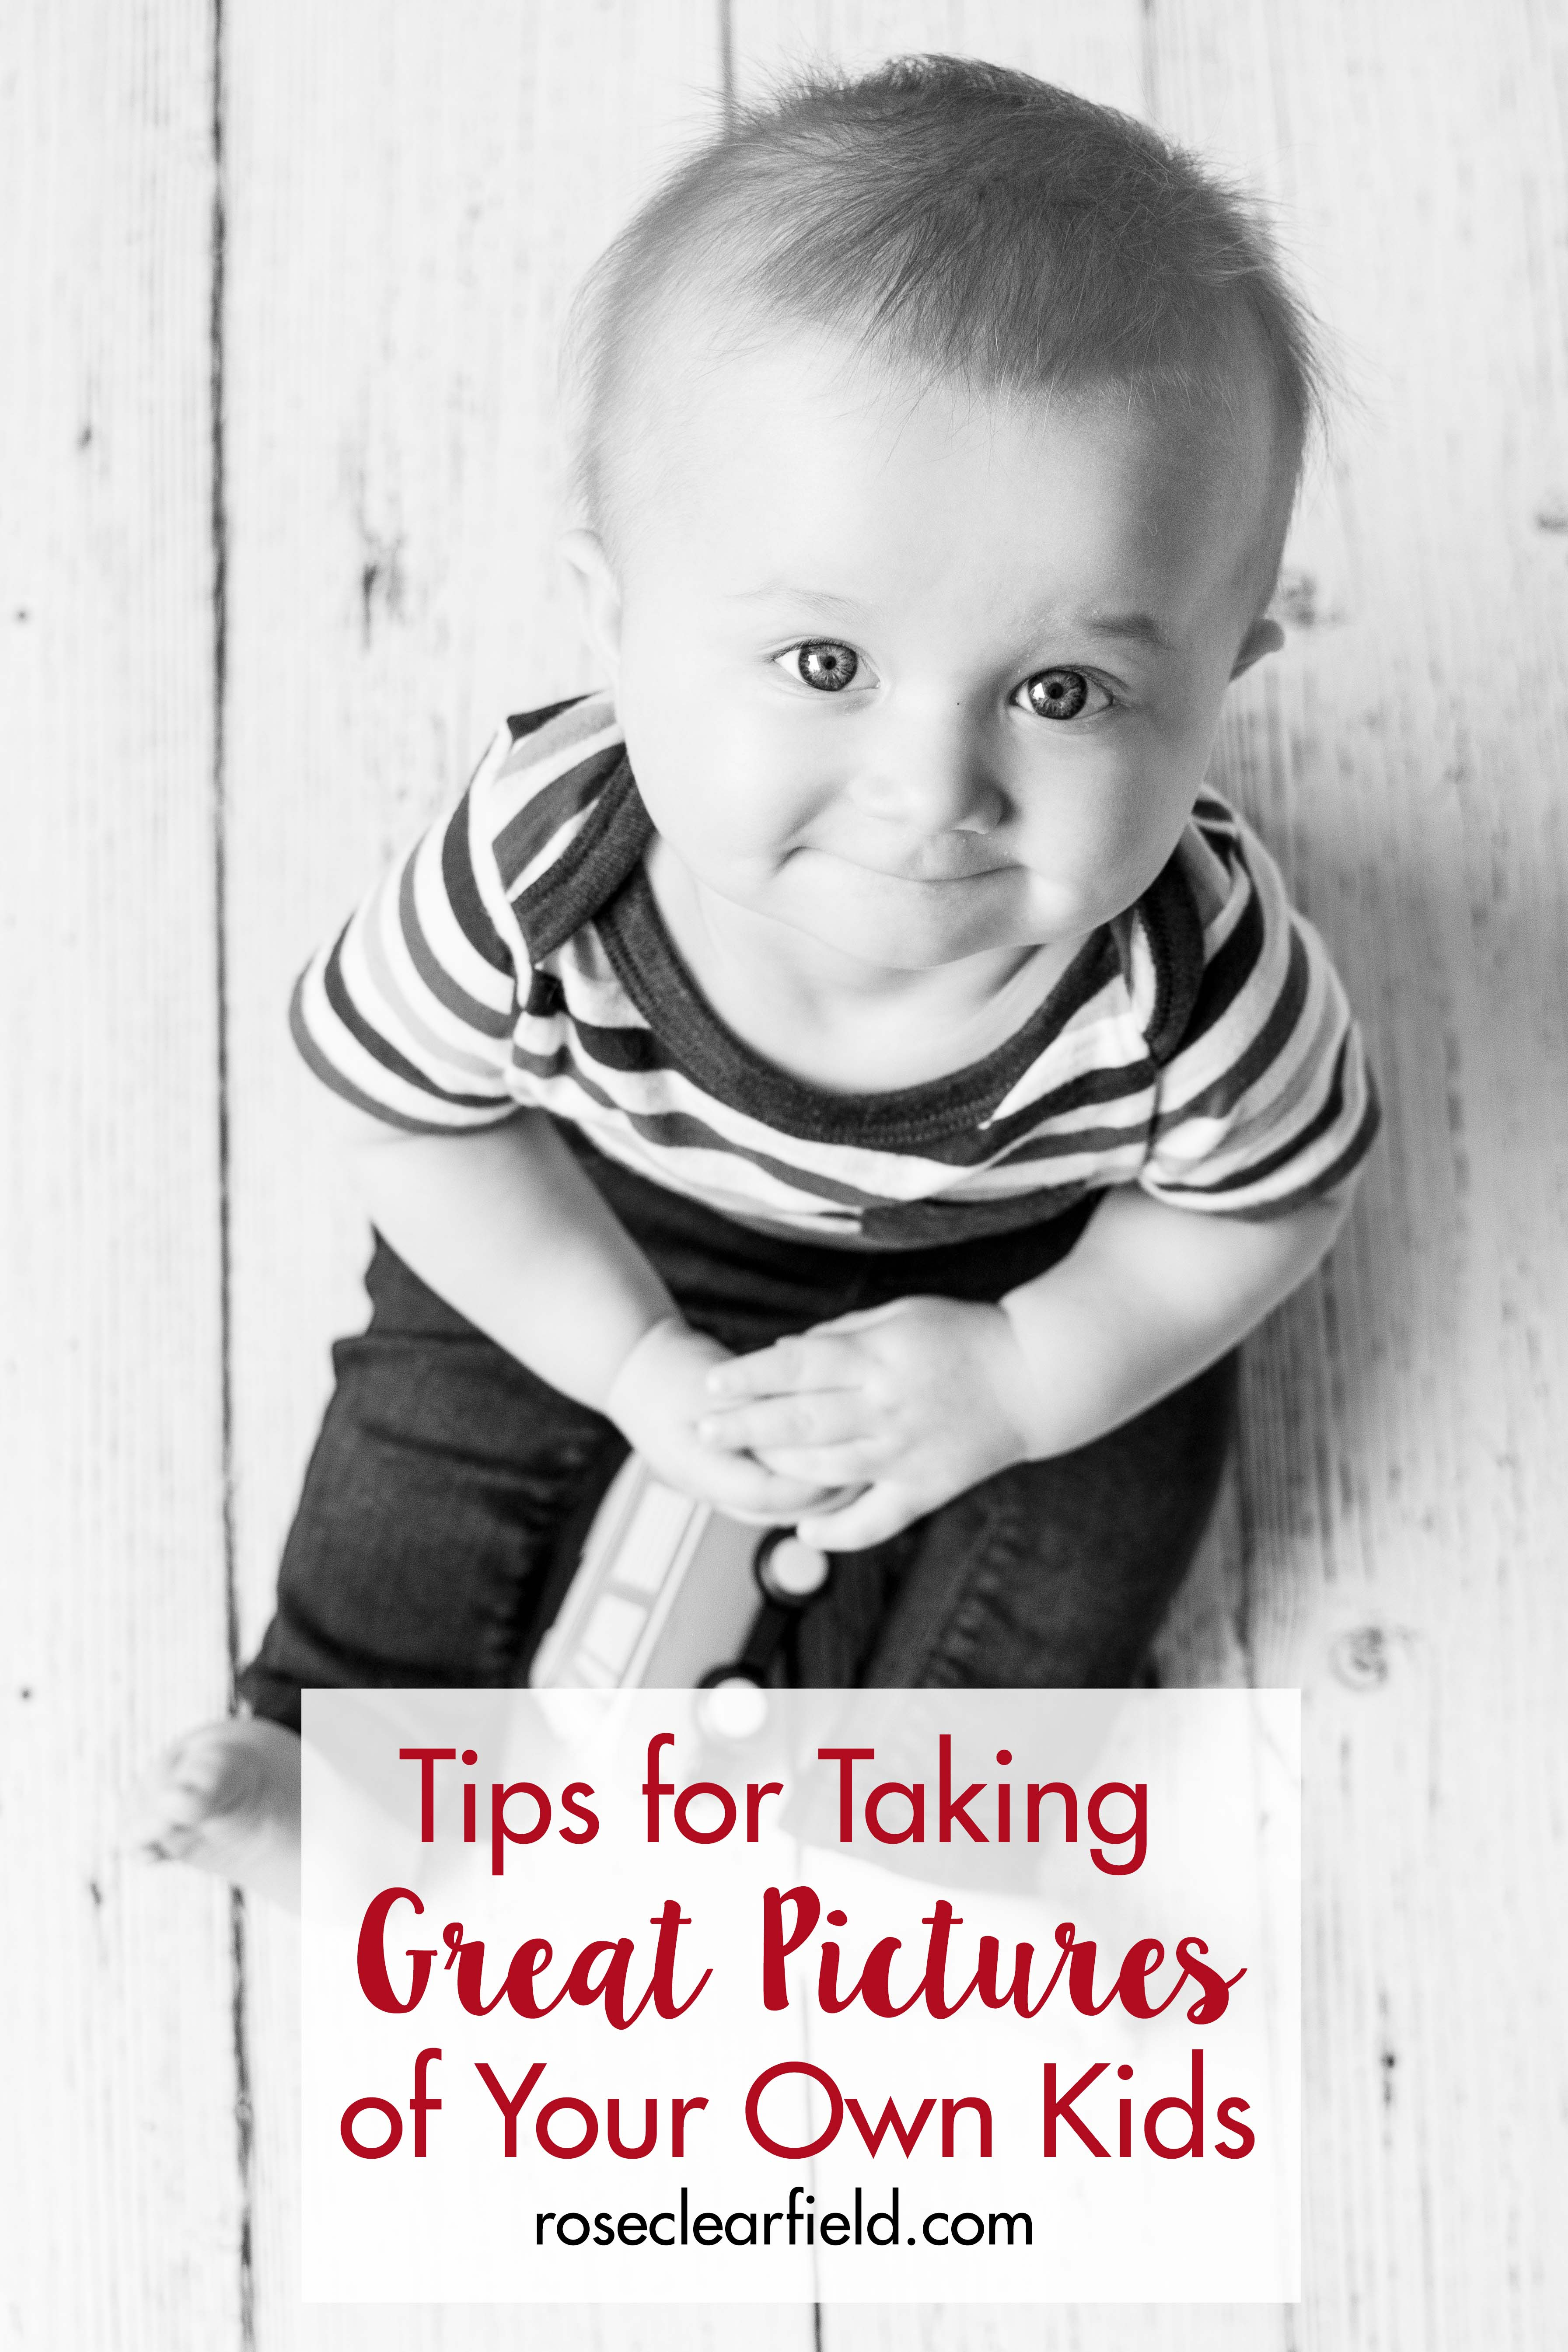 Tips for Taking Great Pictures of Your Own Kids | http://www.roseclearfield.com